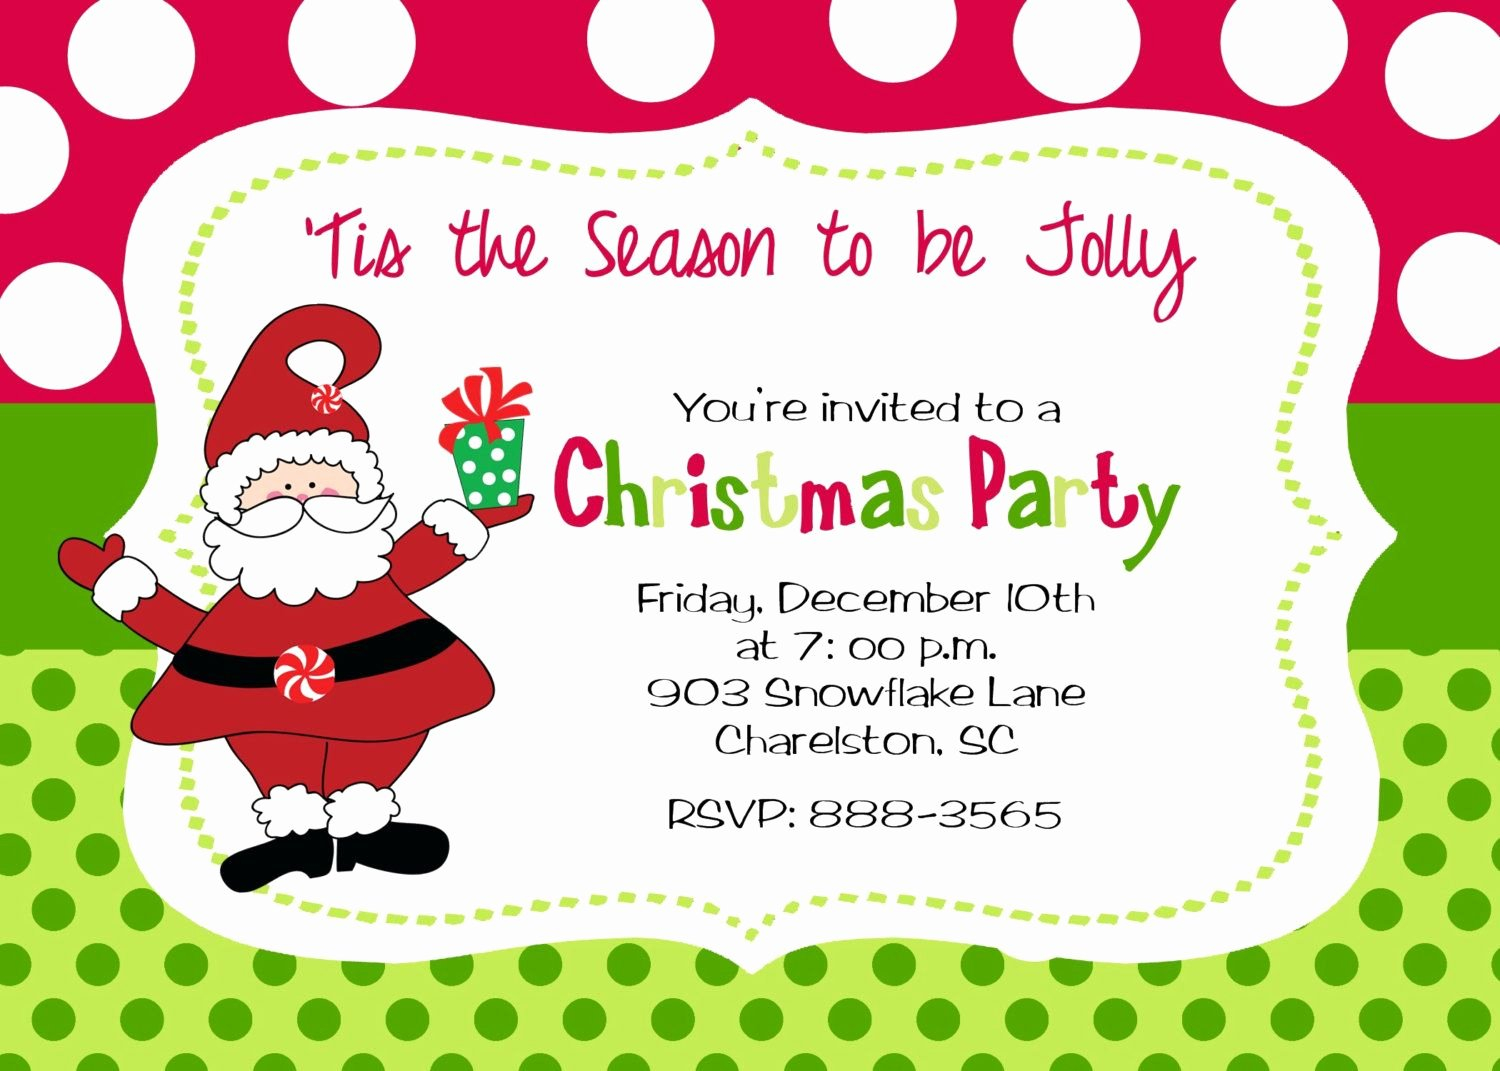 Christmas Party Invitation Template Free New Christmas Party Invitation by Stickerchic Etsy